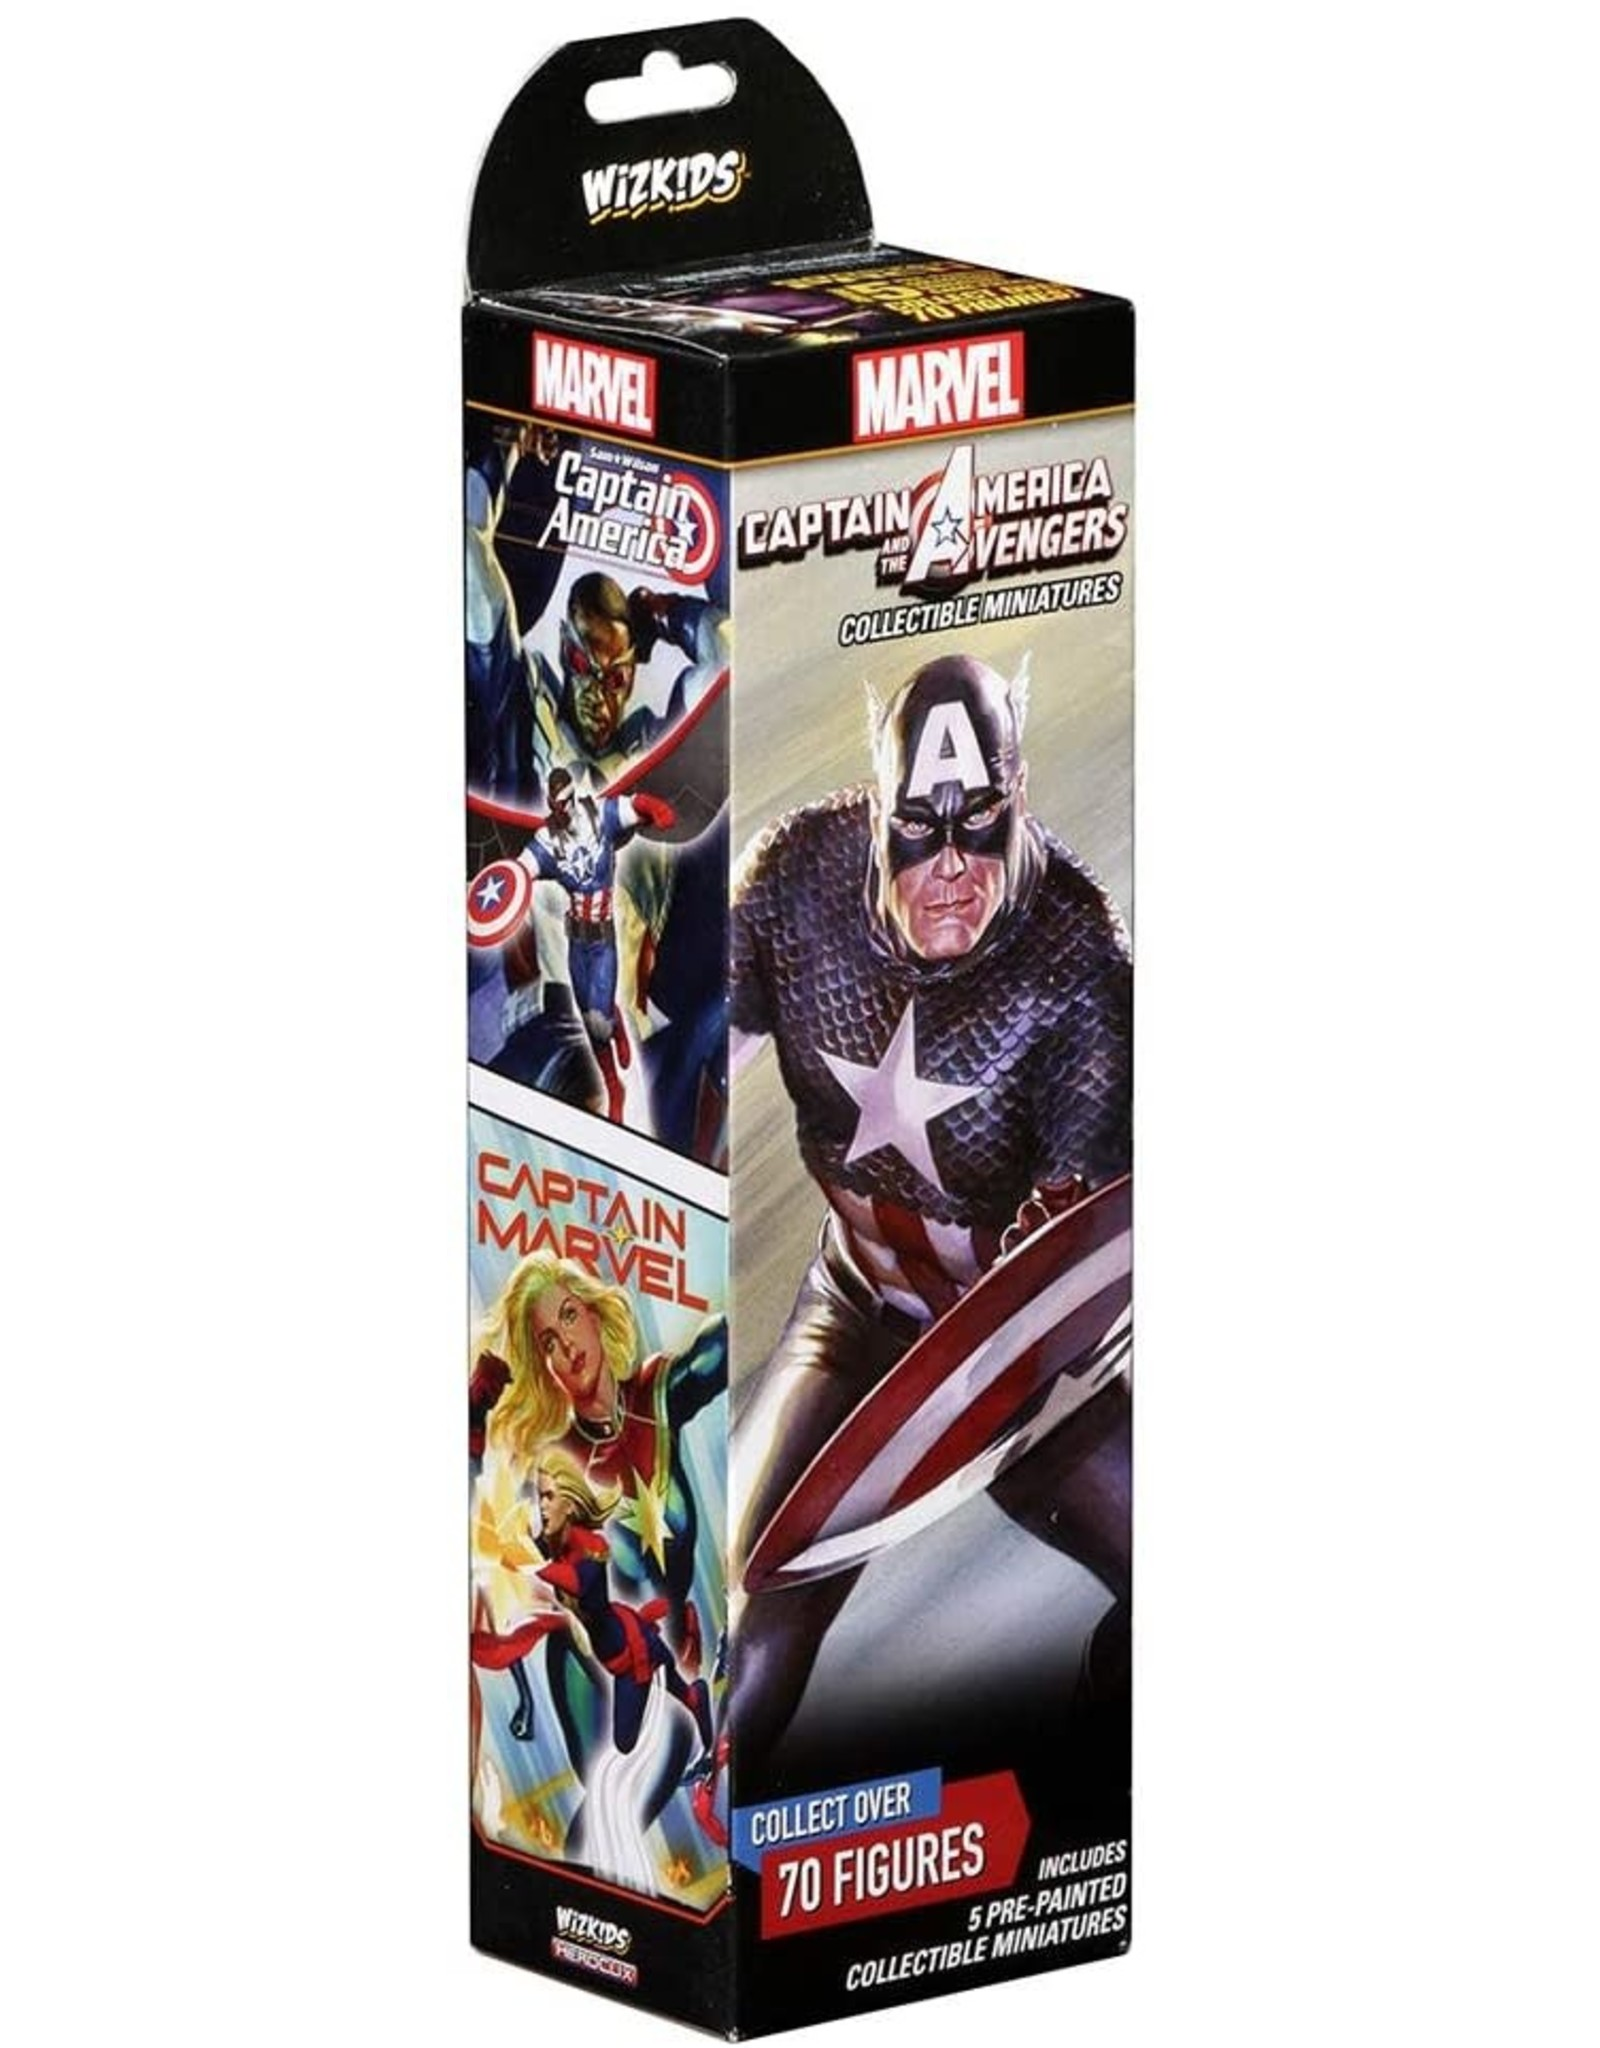 Wizkids Marvel HeroClix: Captain America and the Avengers Booster pack